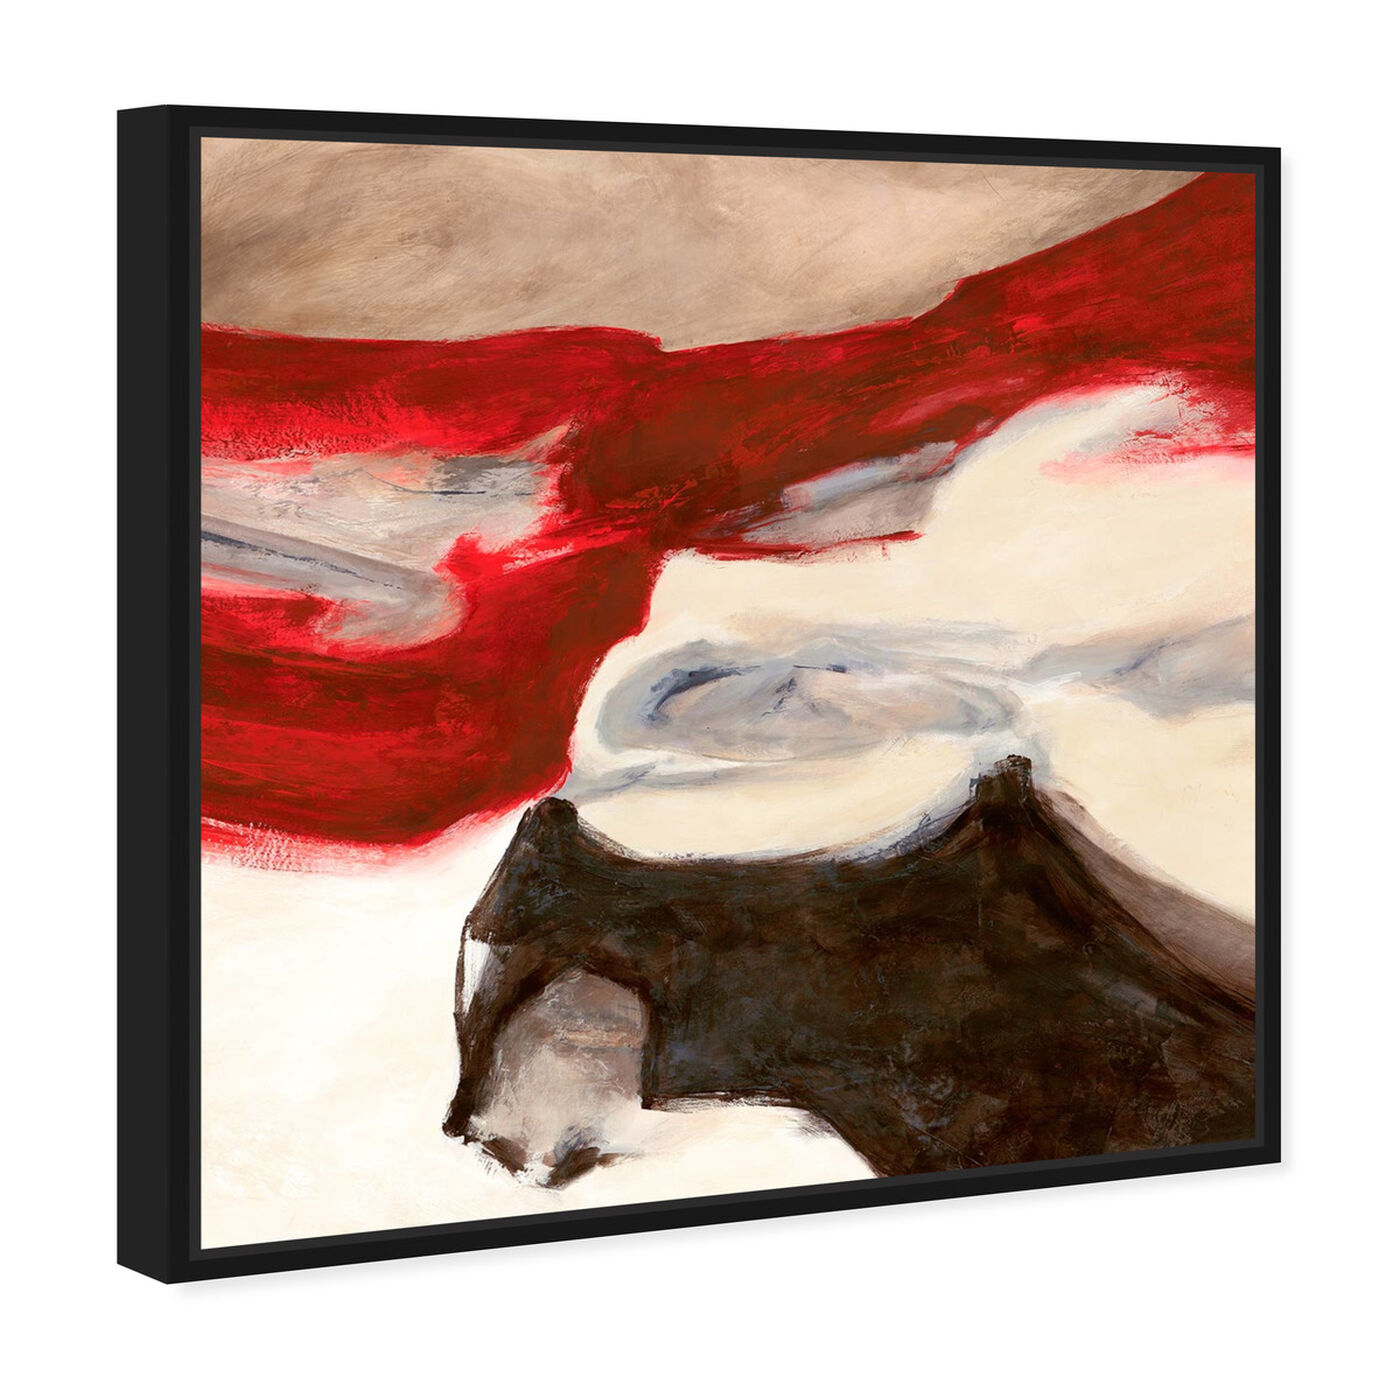 Angled view of Sai - Rubrum IV featuring abstract and paint art.